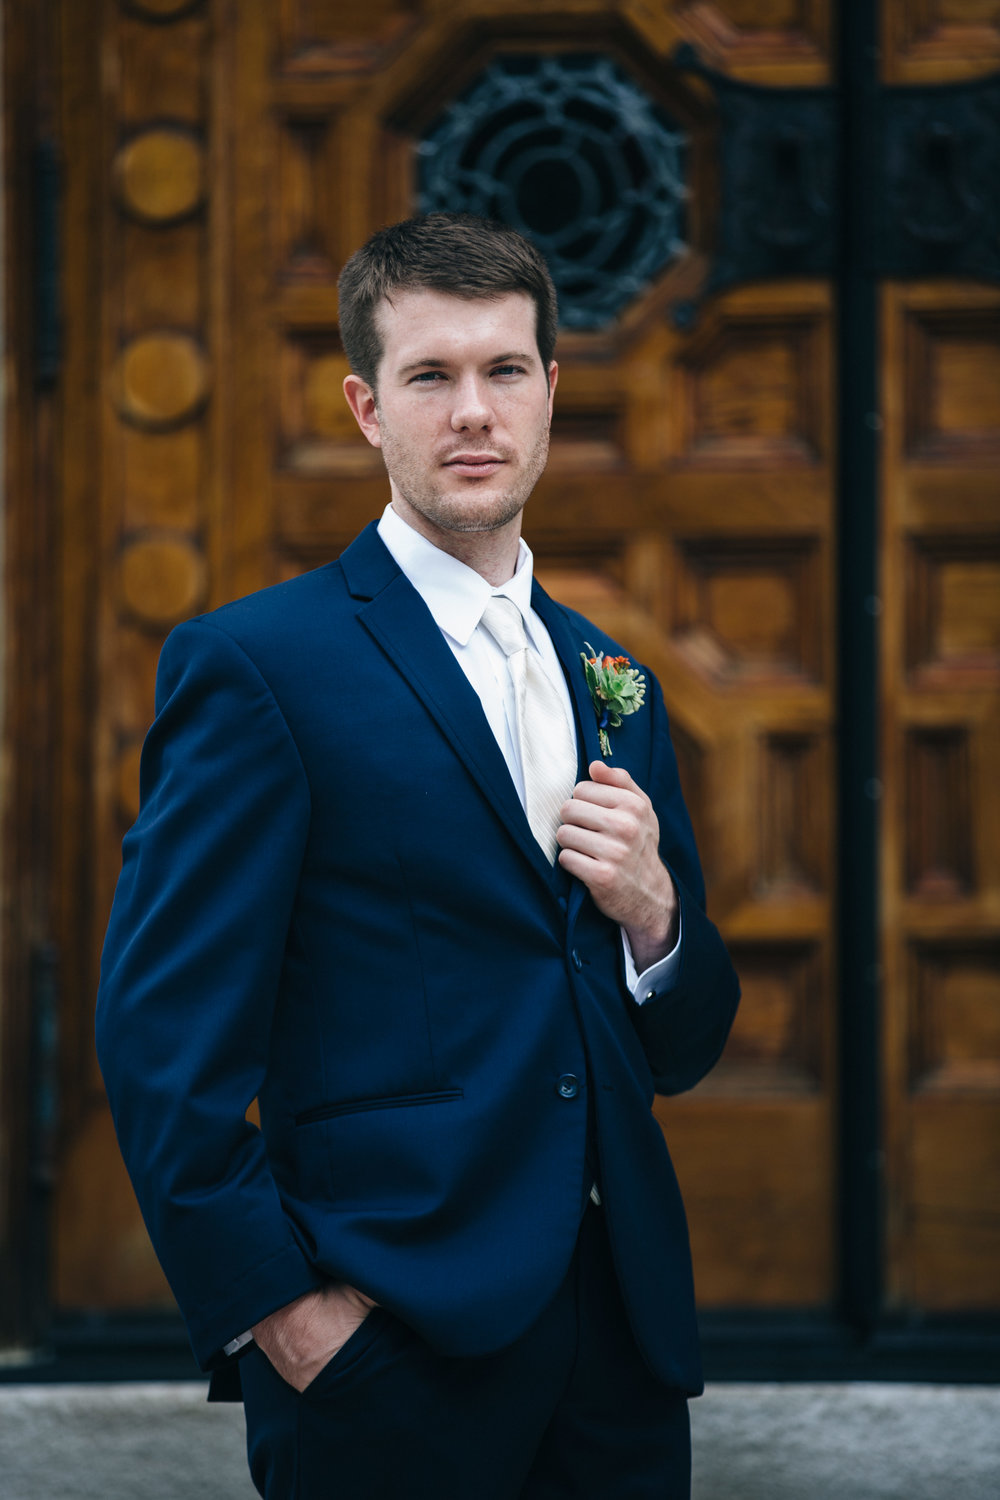 Wedding photography of groom in navy blue suit.